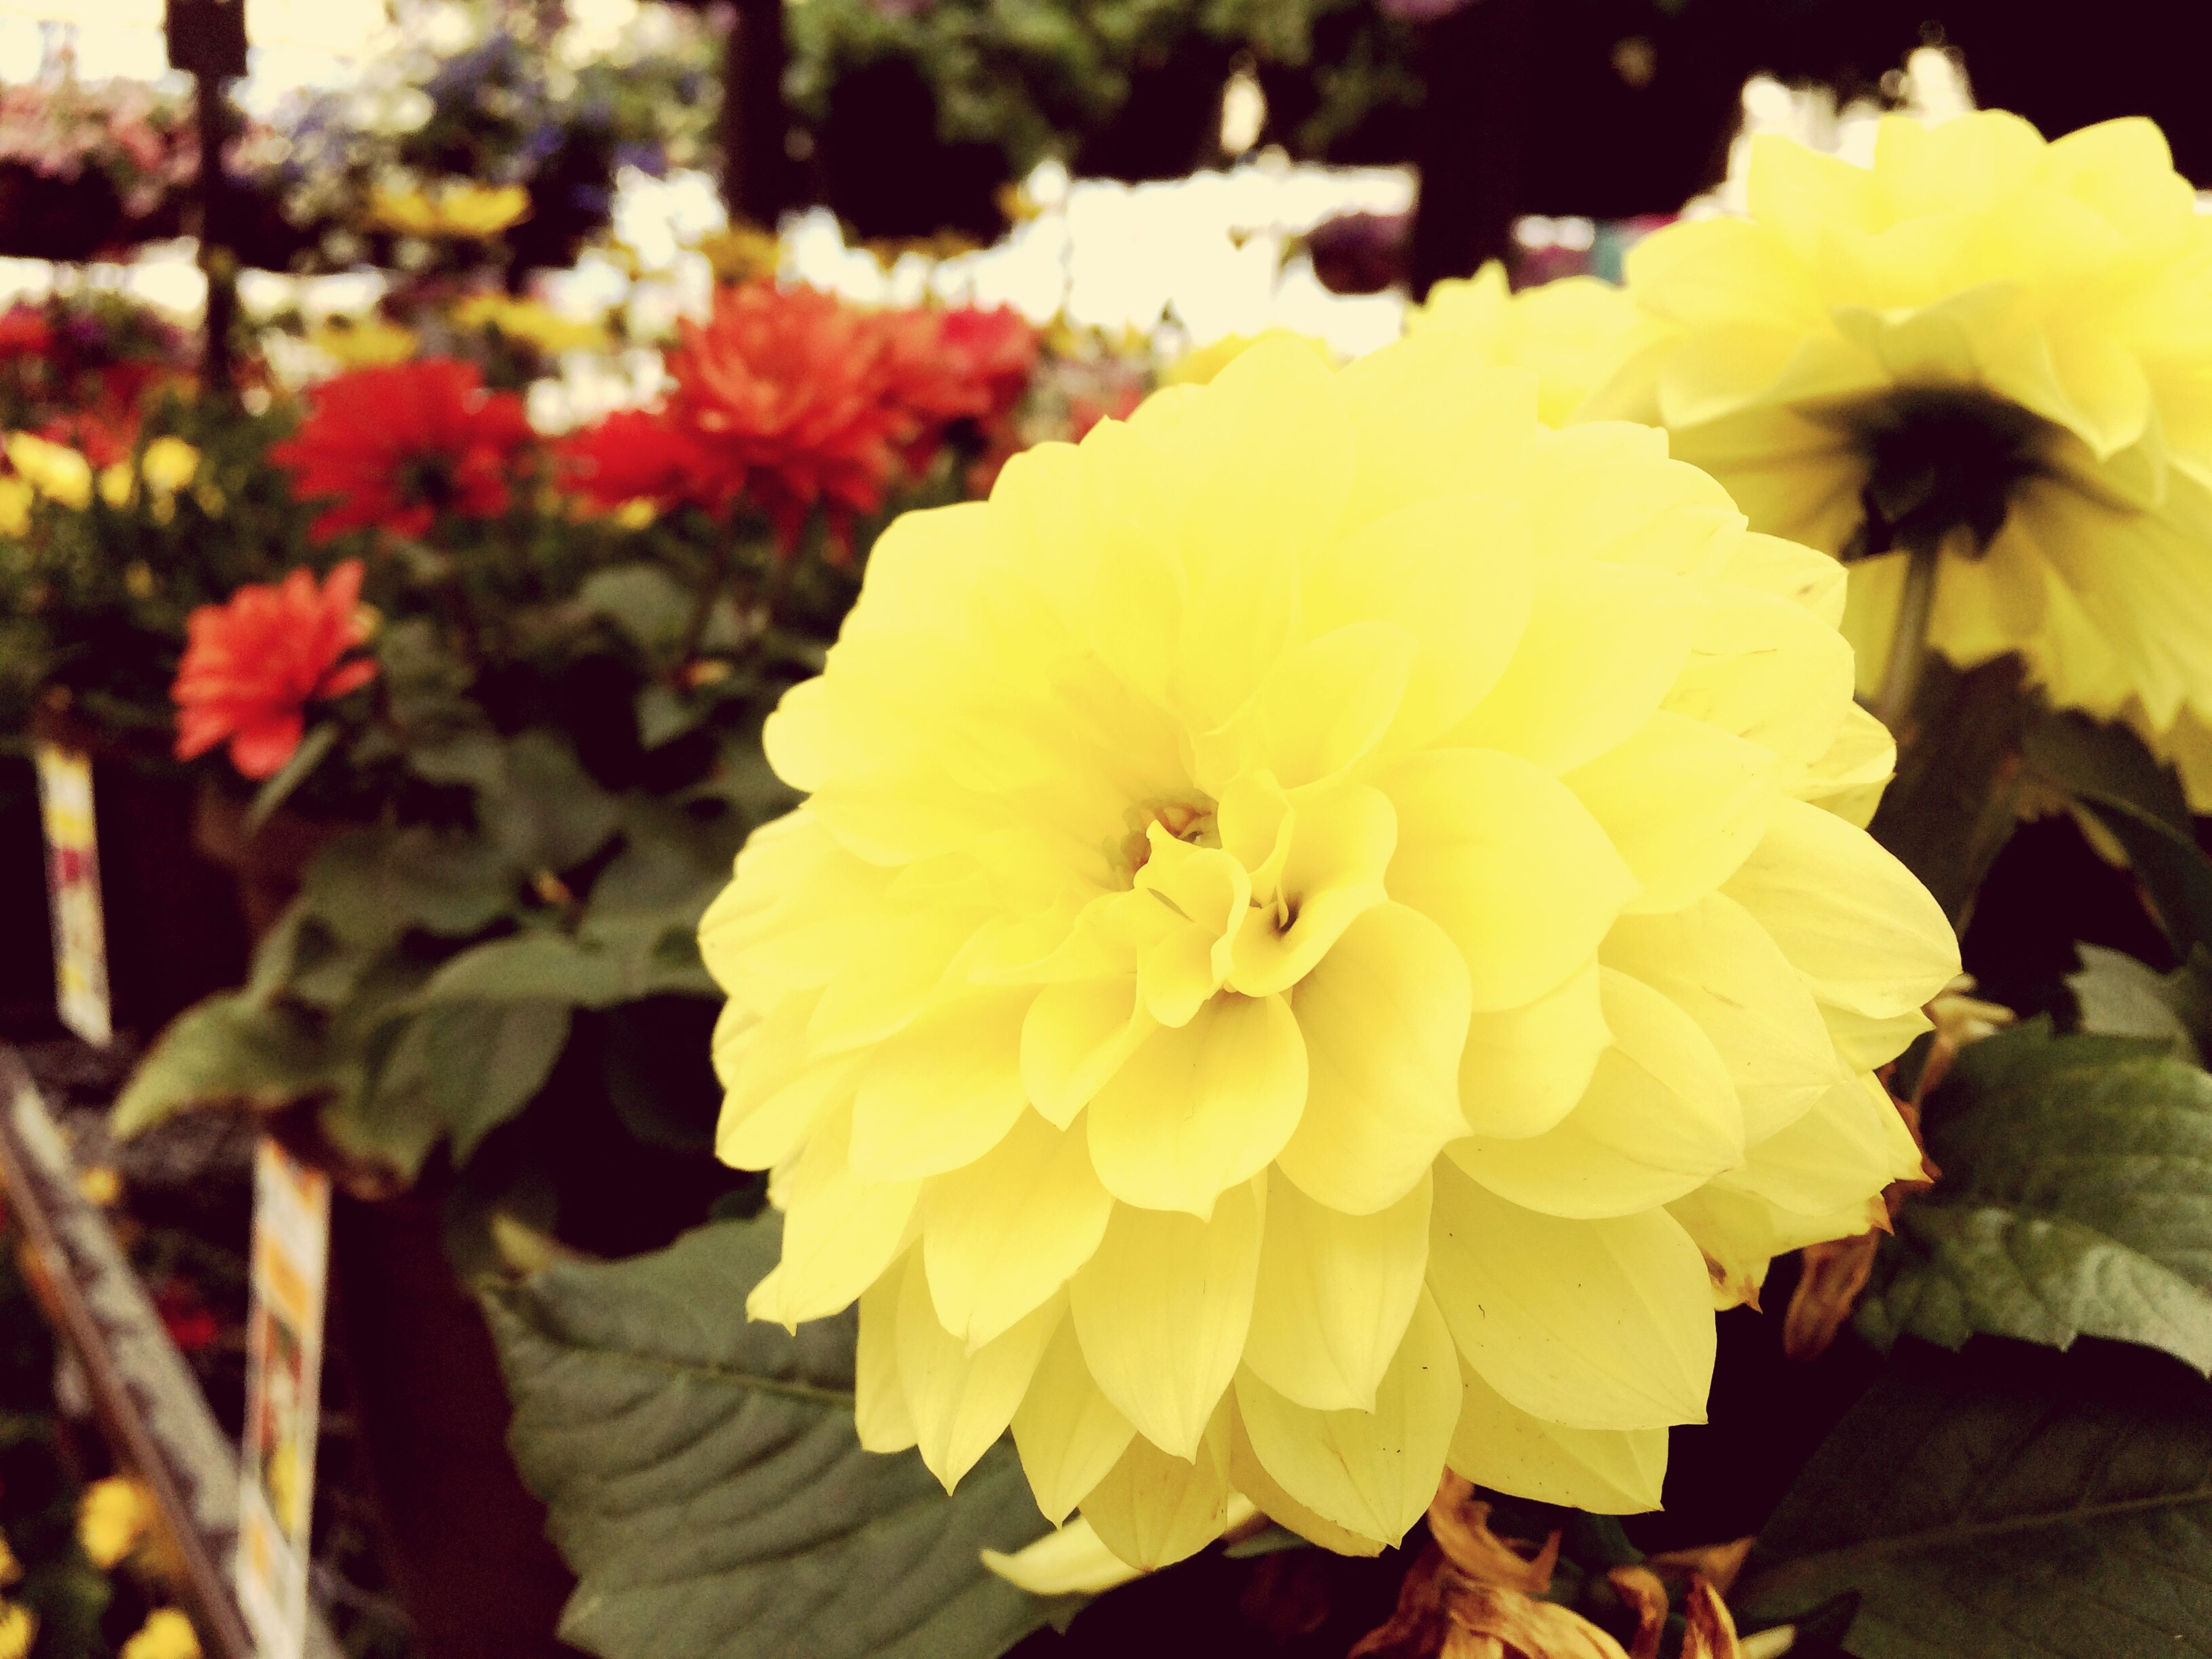 flower, petal, flower head, freshness, fragility, beauty in nature, growth, yellow, blooming, close-up, focus on foreground, nature, plant, in bloom, single flower, park - man made space, pollen, day, blossom, botany